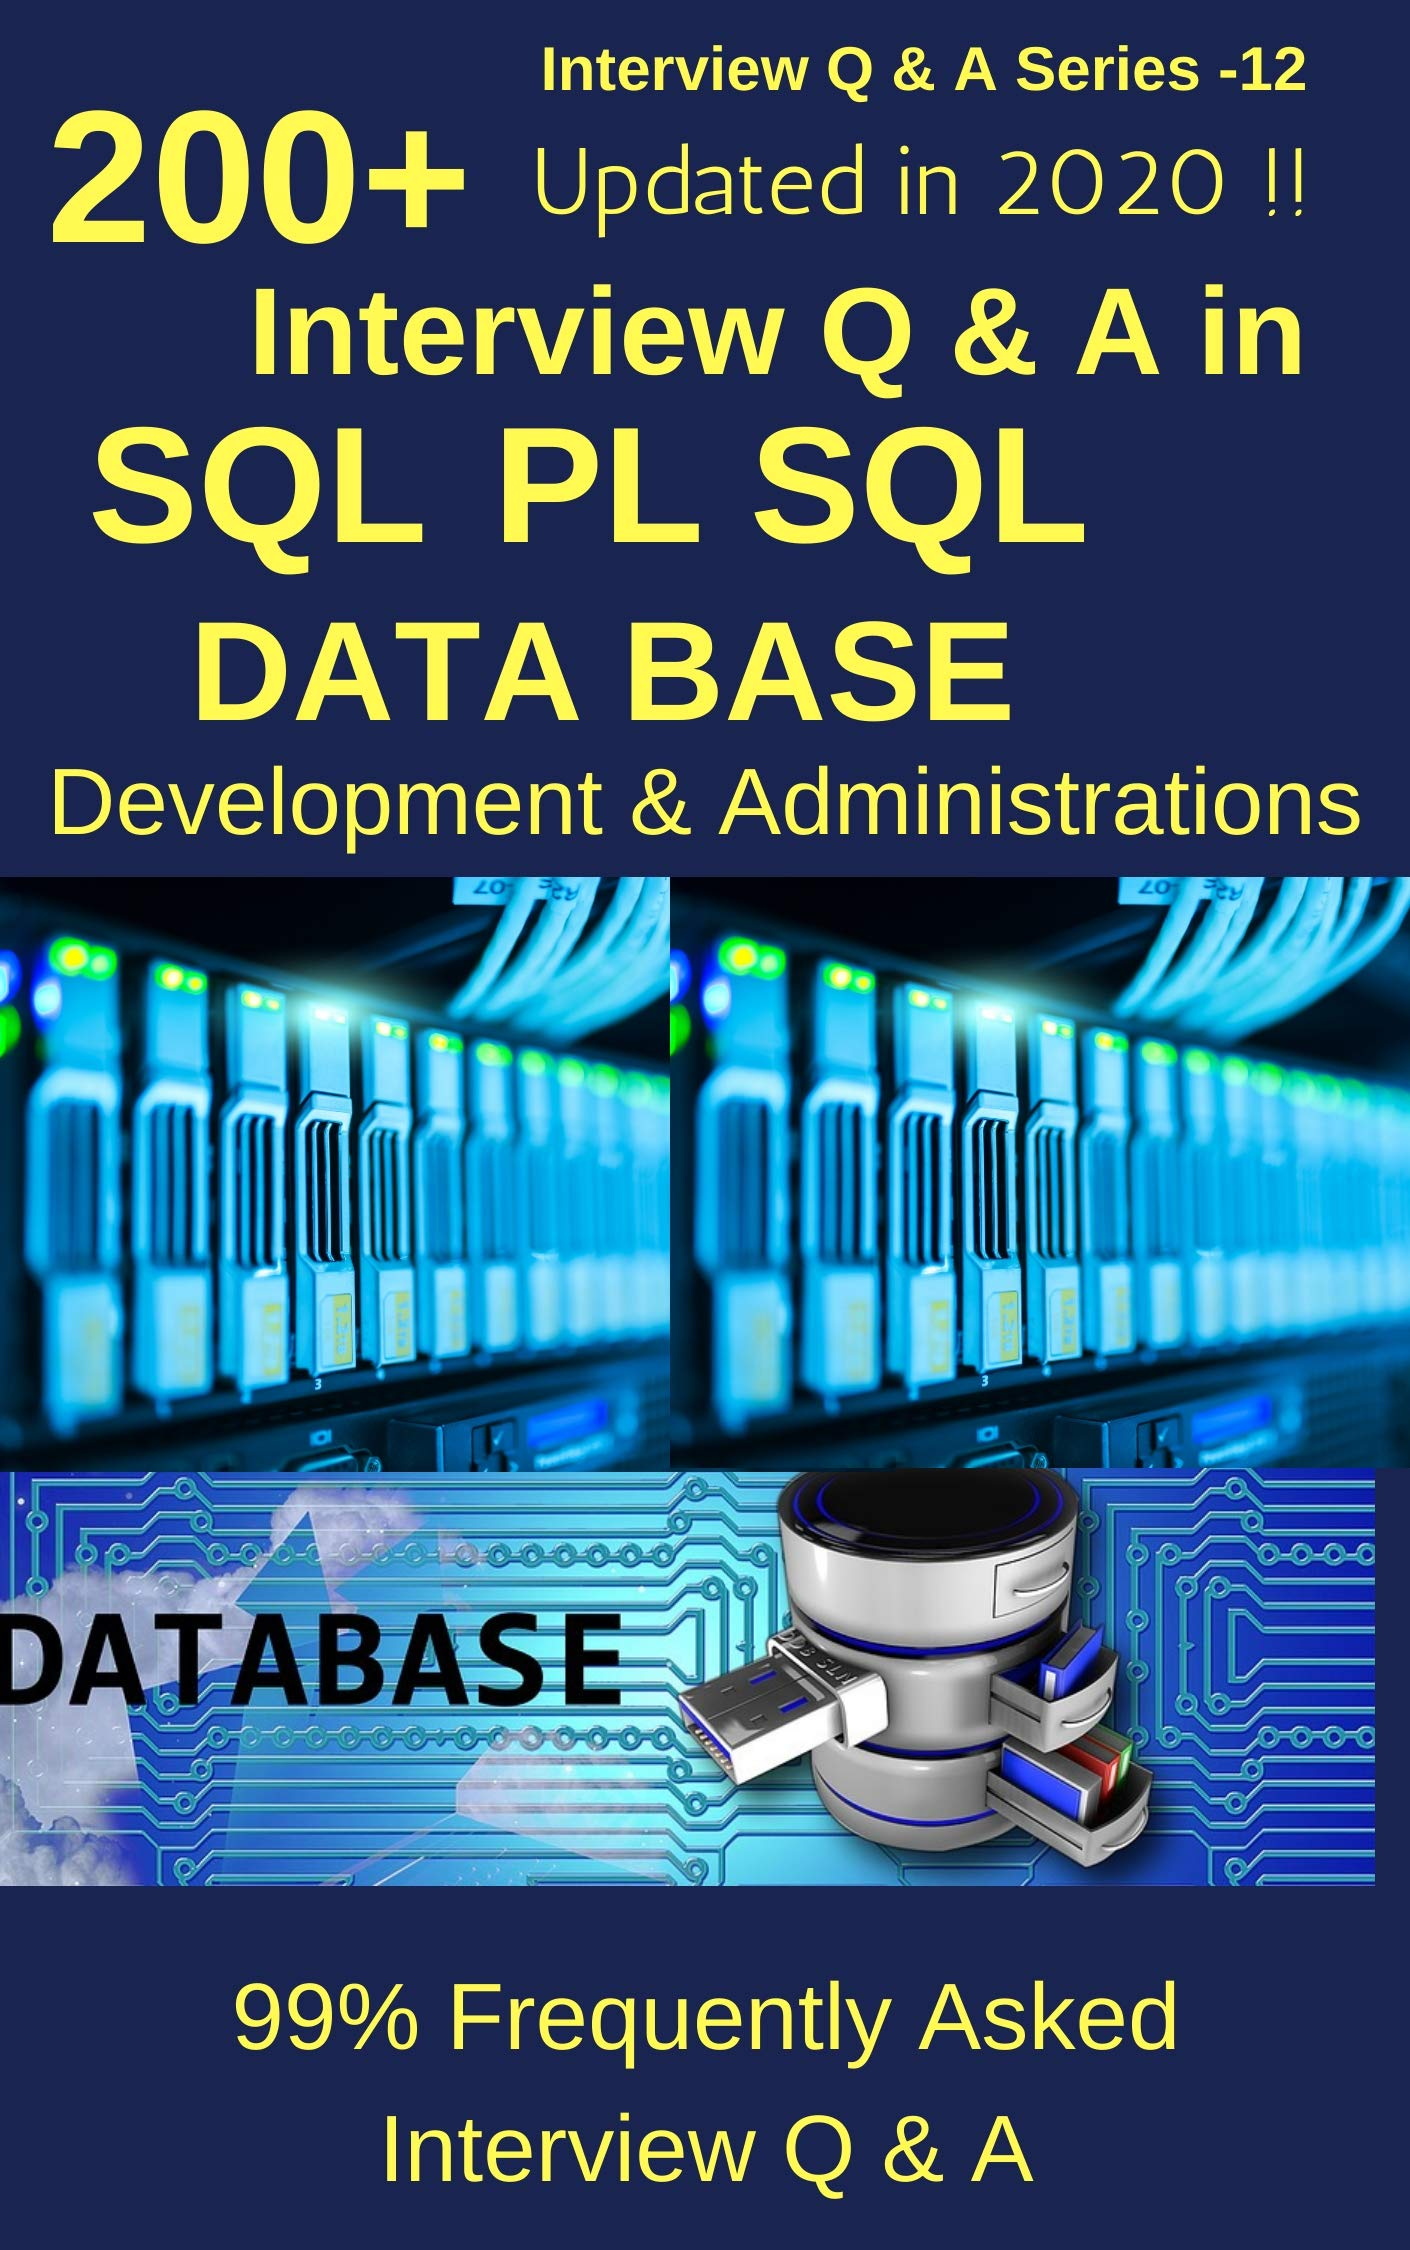 200 + Interview Q & A in SQL , PL/SQL, Database Development & Administration-Updated in 2020 !!: 99% Frequently asked Interview Q & A (Interview Q & A Series Book 12)